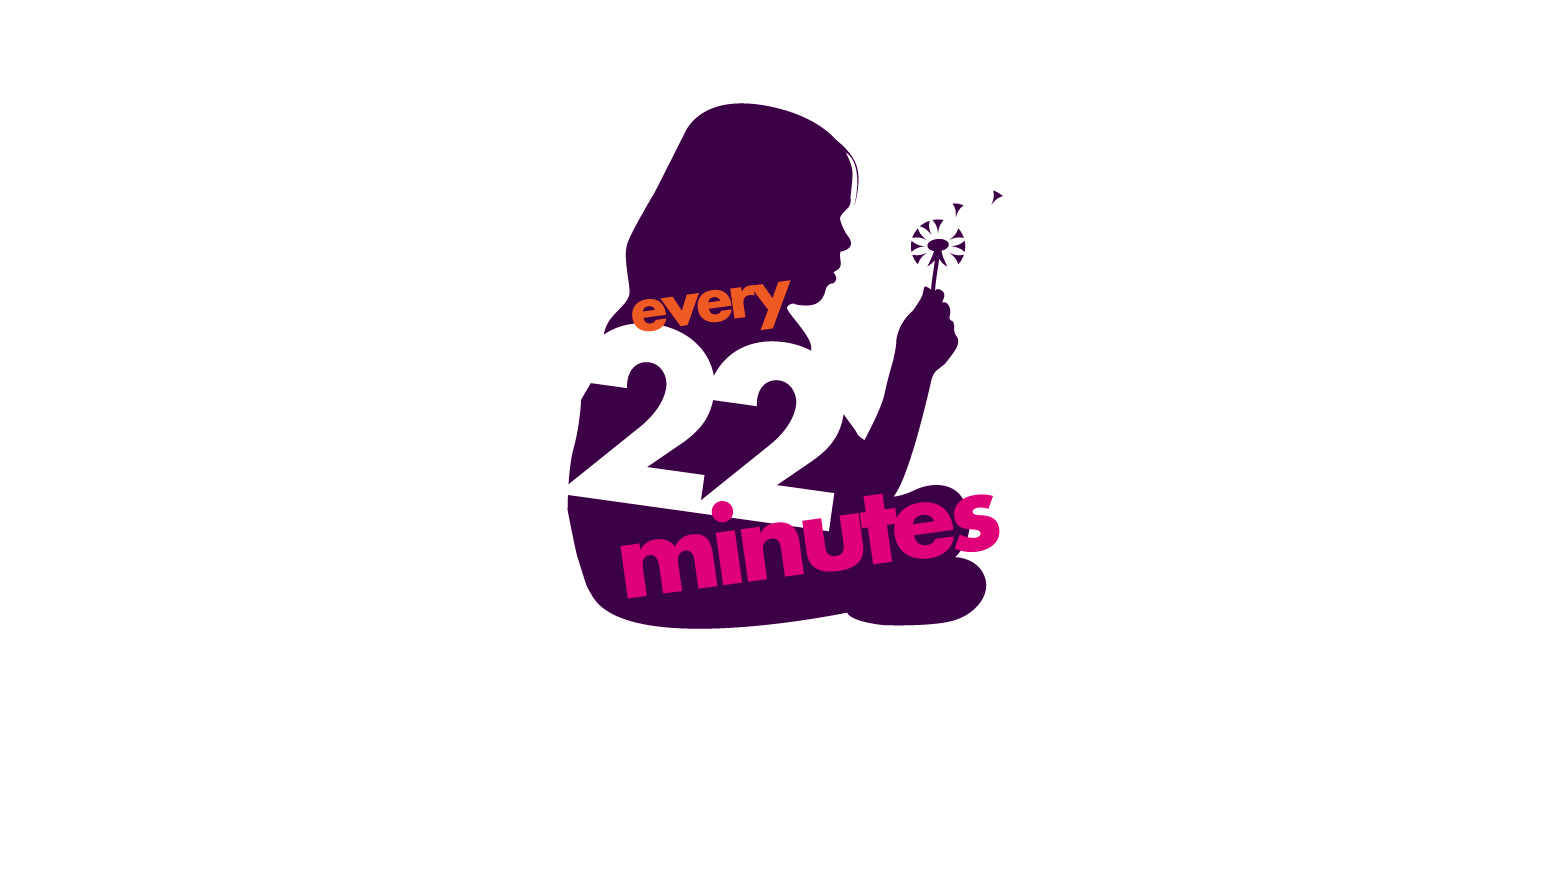 Spurgeons Every 22 Minutes campaign logo design